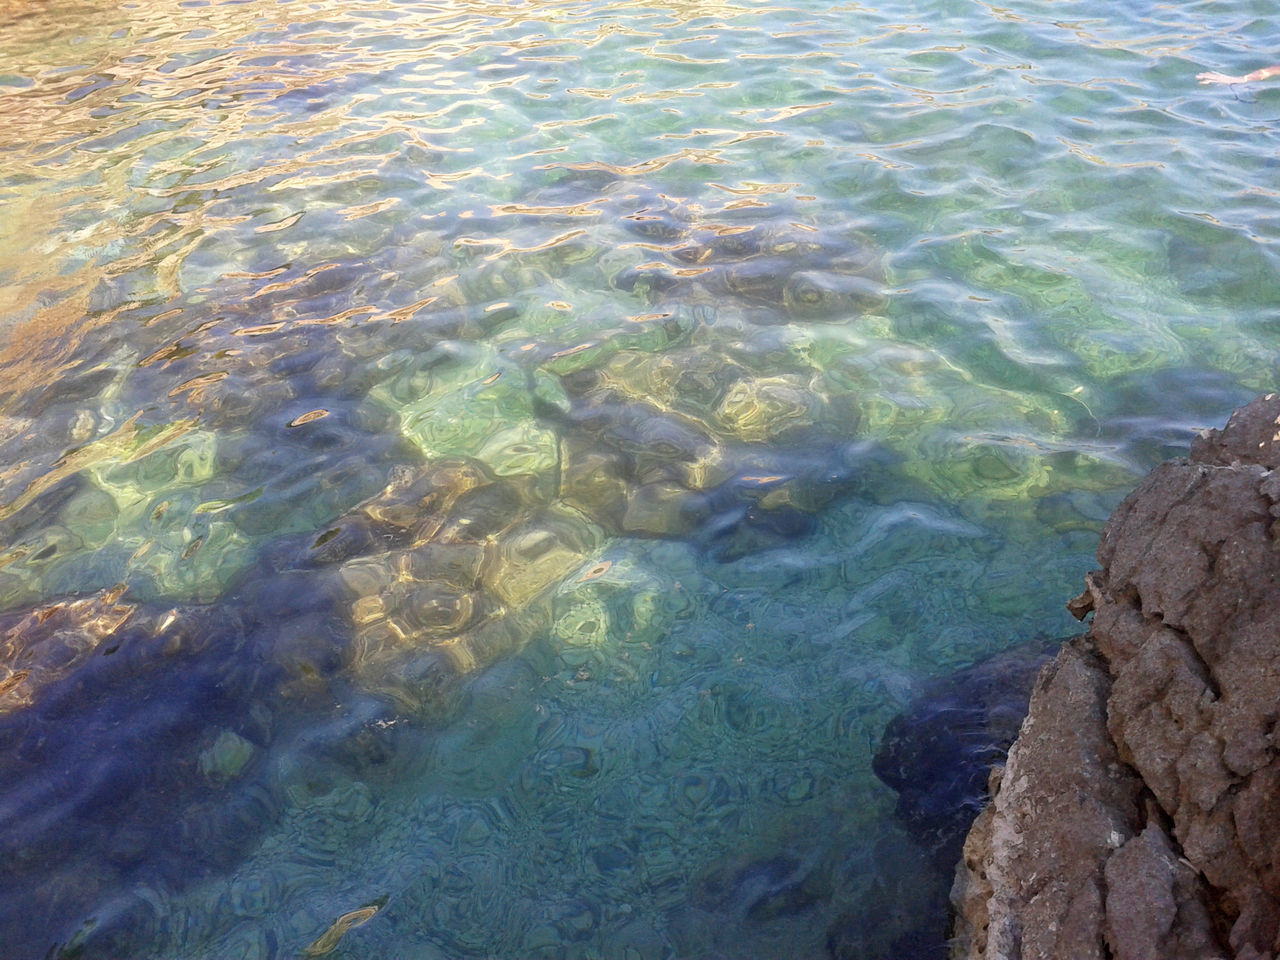 water, rock, solid, rock - object, sea, nature, no people, day, beauty in nature, high angle view, transparent, outdoors, underwater, tranquility, waterfront, motion, land, rippled, full frame, purity, shallow, pollution